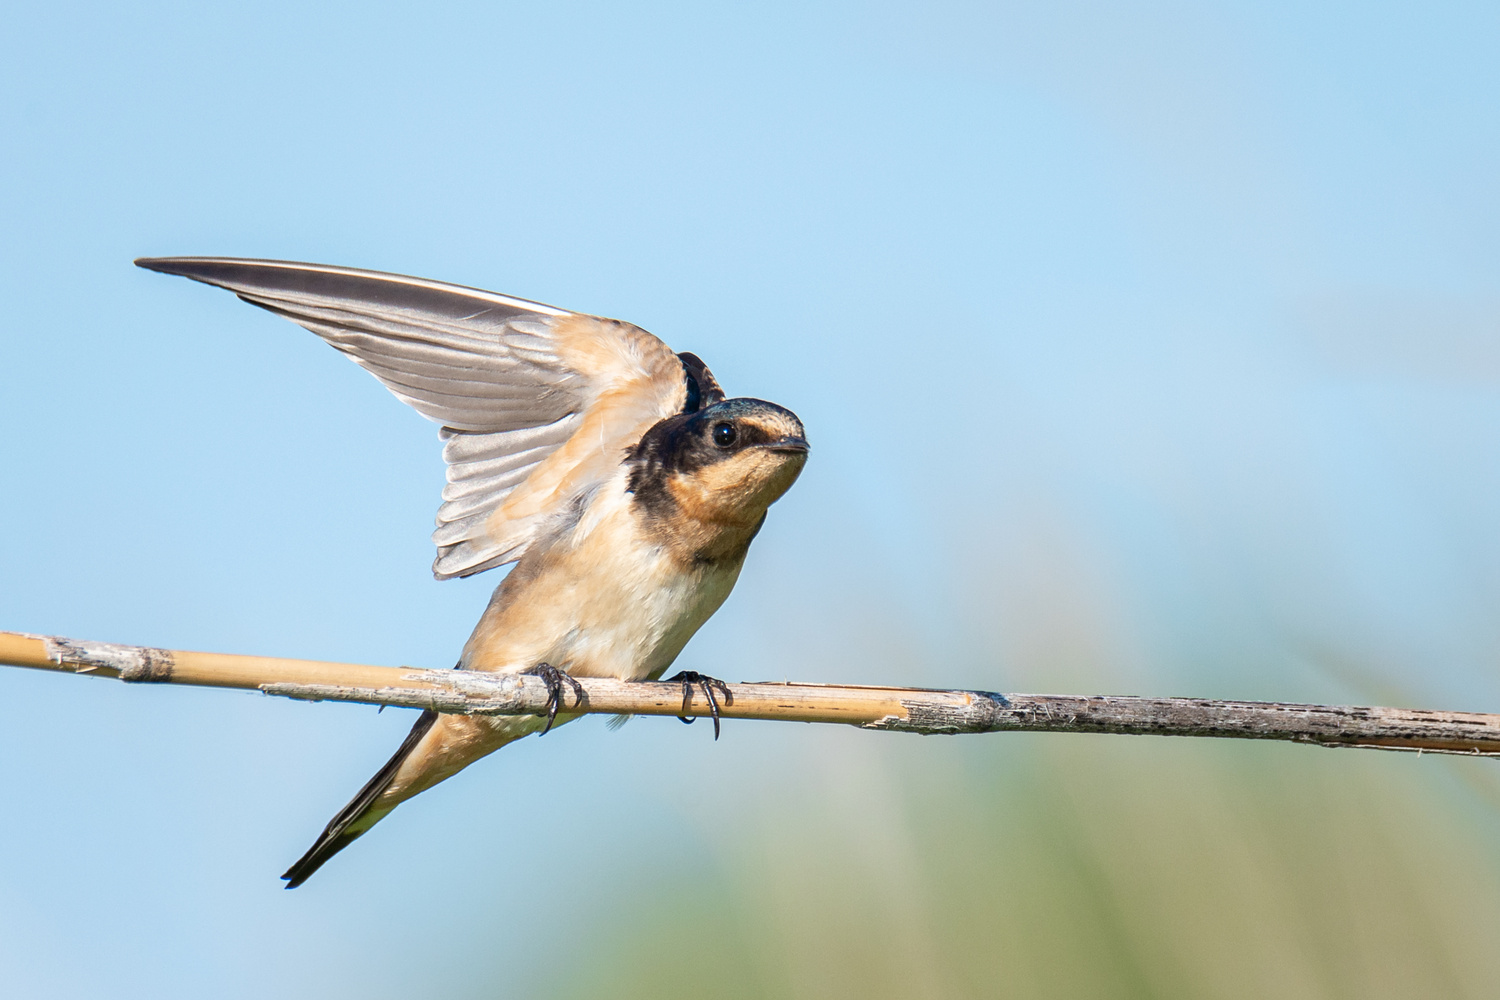 Barn Swallow Maintaining Balance by Kyle Rohlfing